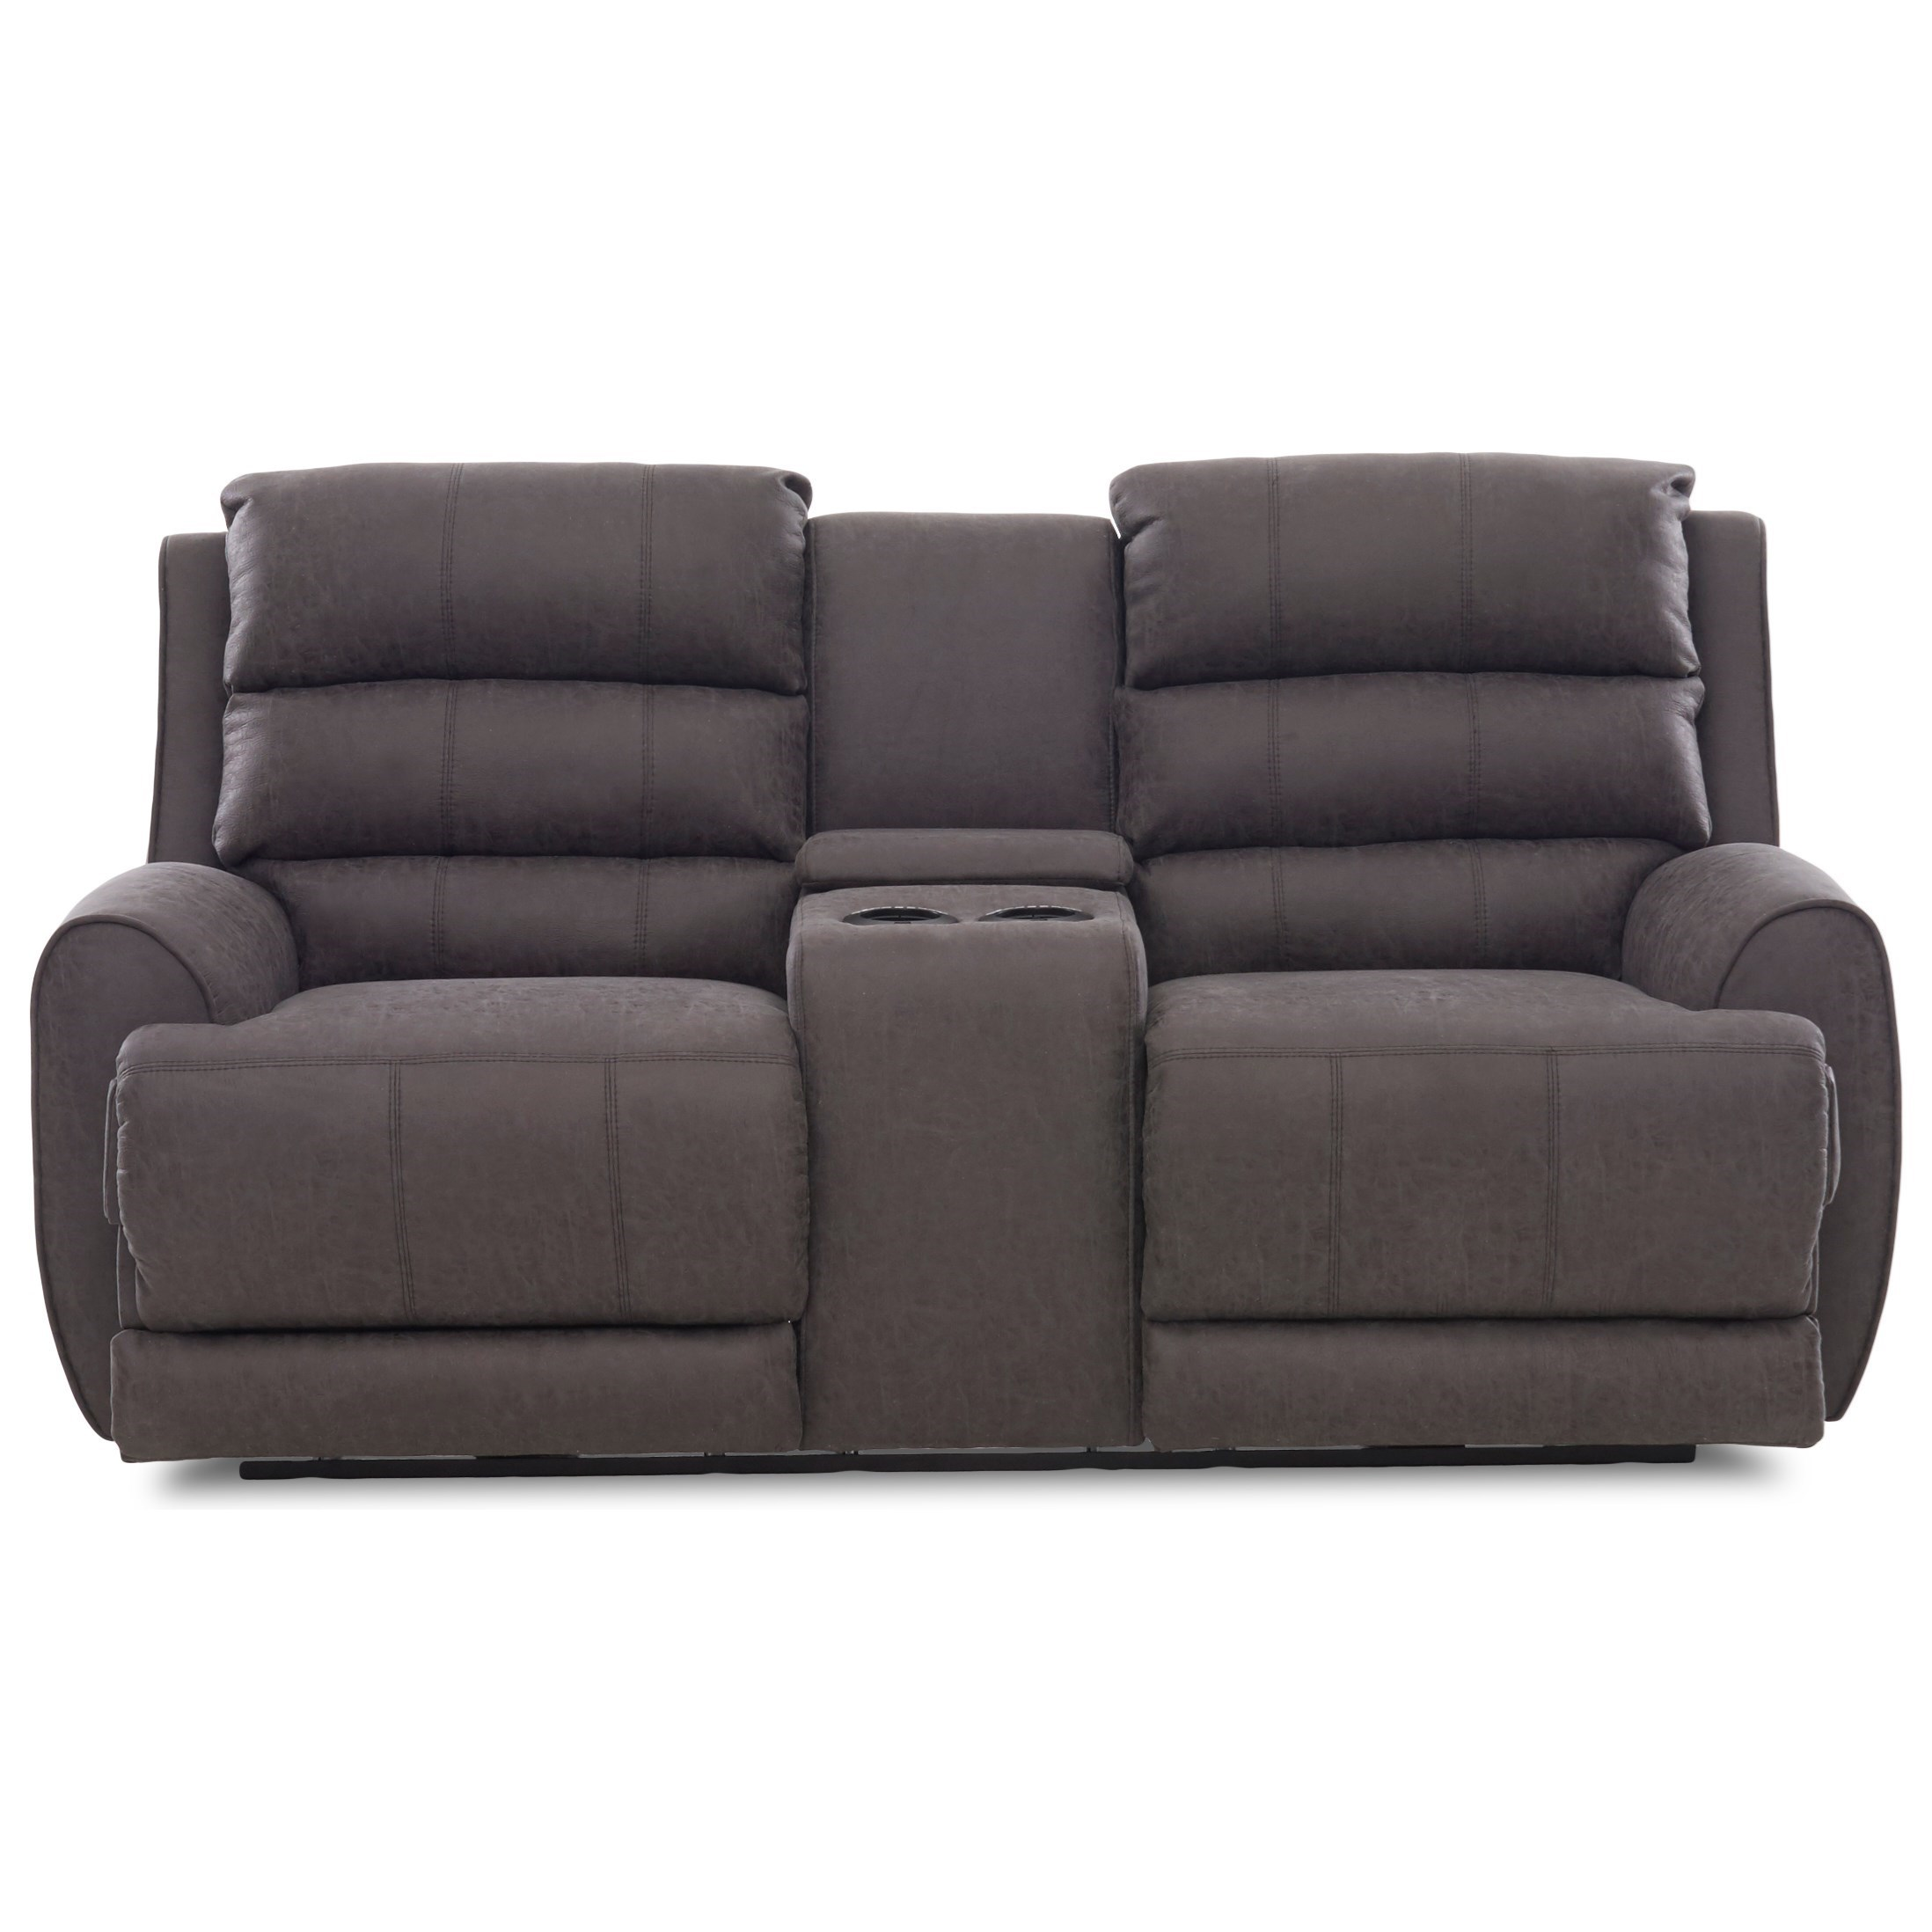 Klaussner Gleeson Contemporary Power Reclining Console Loveseat With